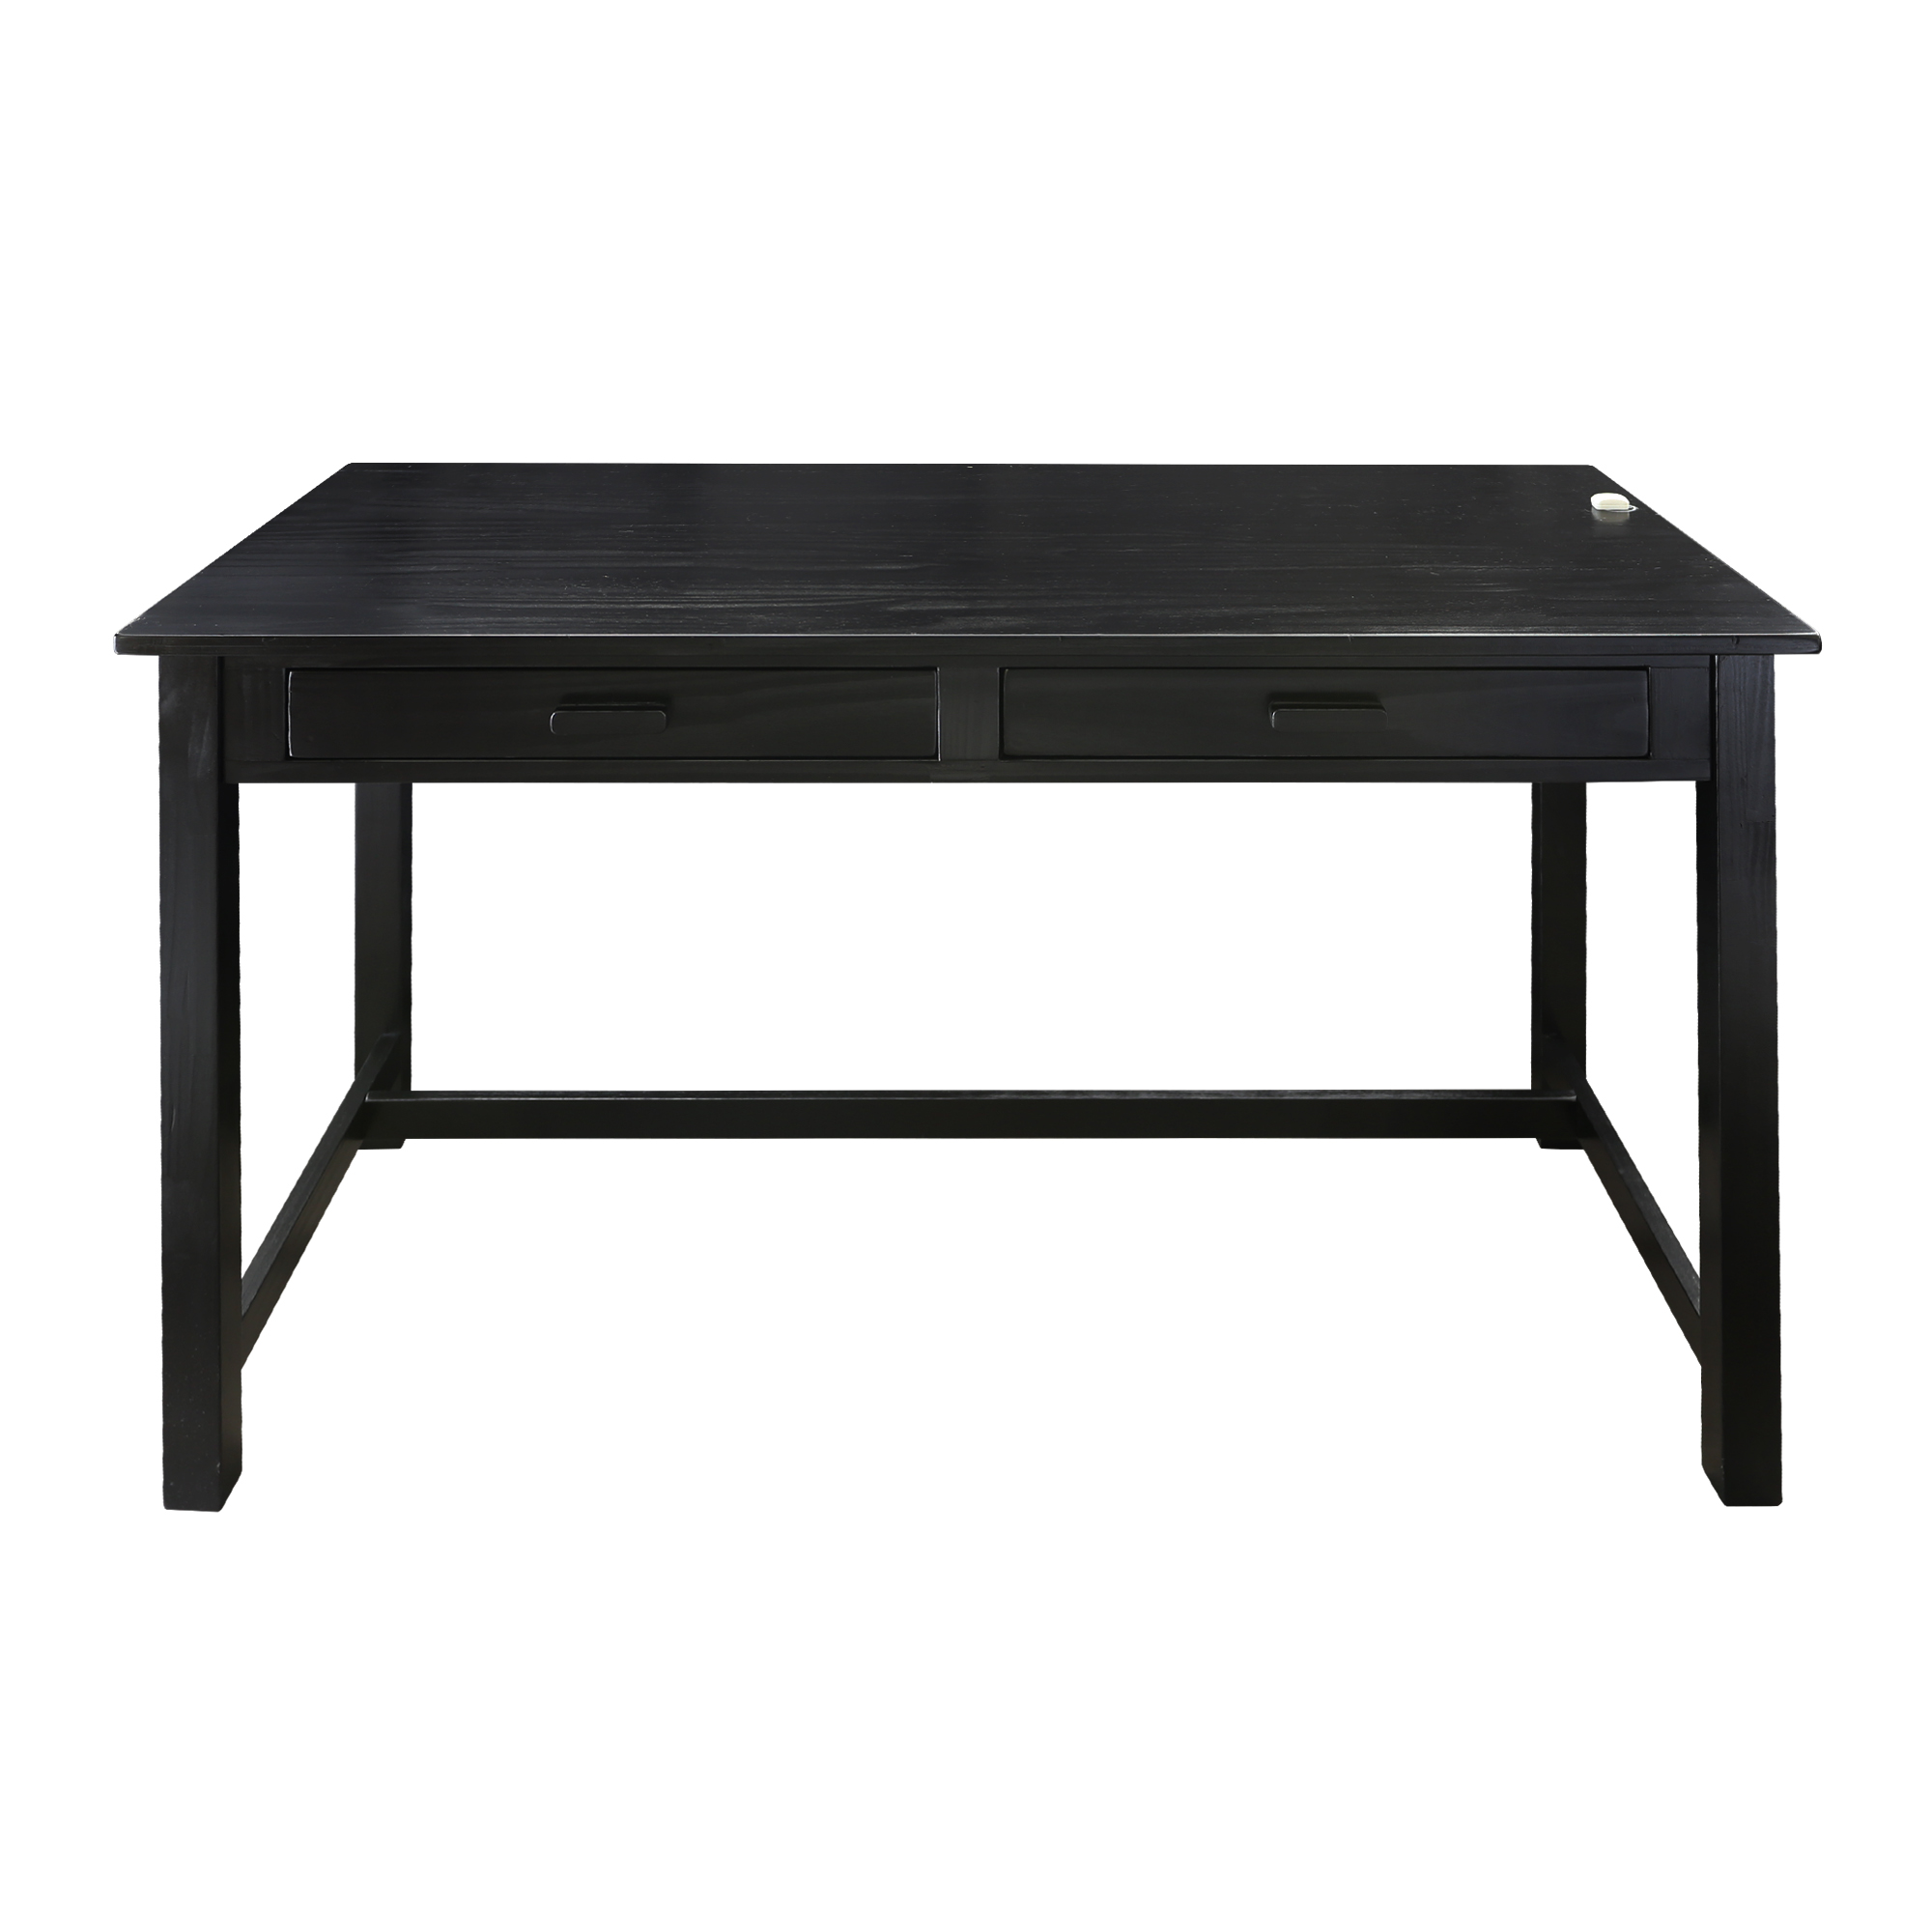 Jefferson Work Desk with Concealed Side Drawer Concealment